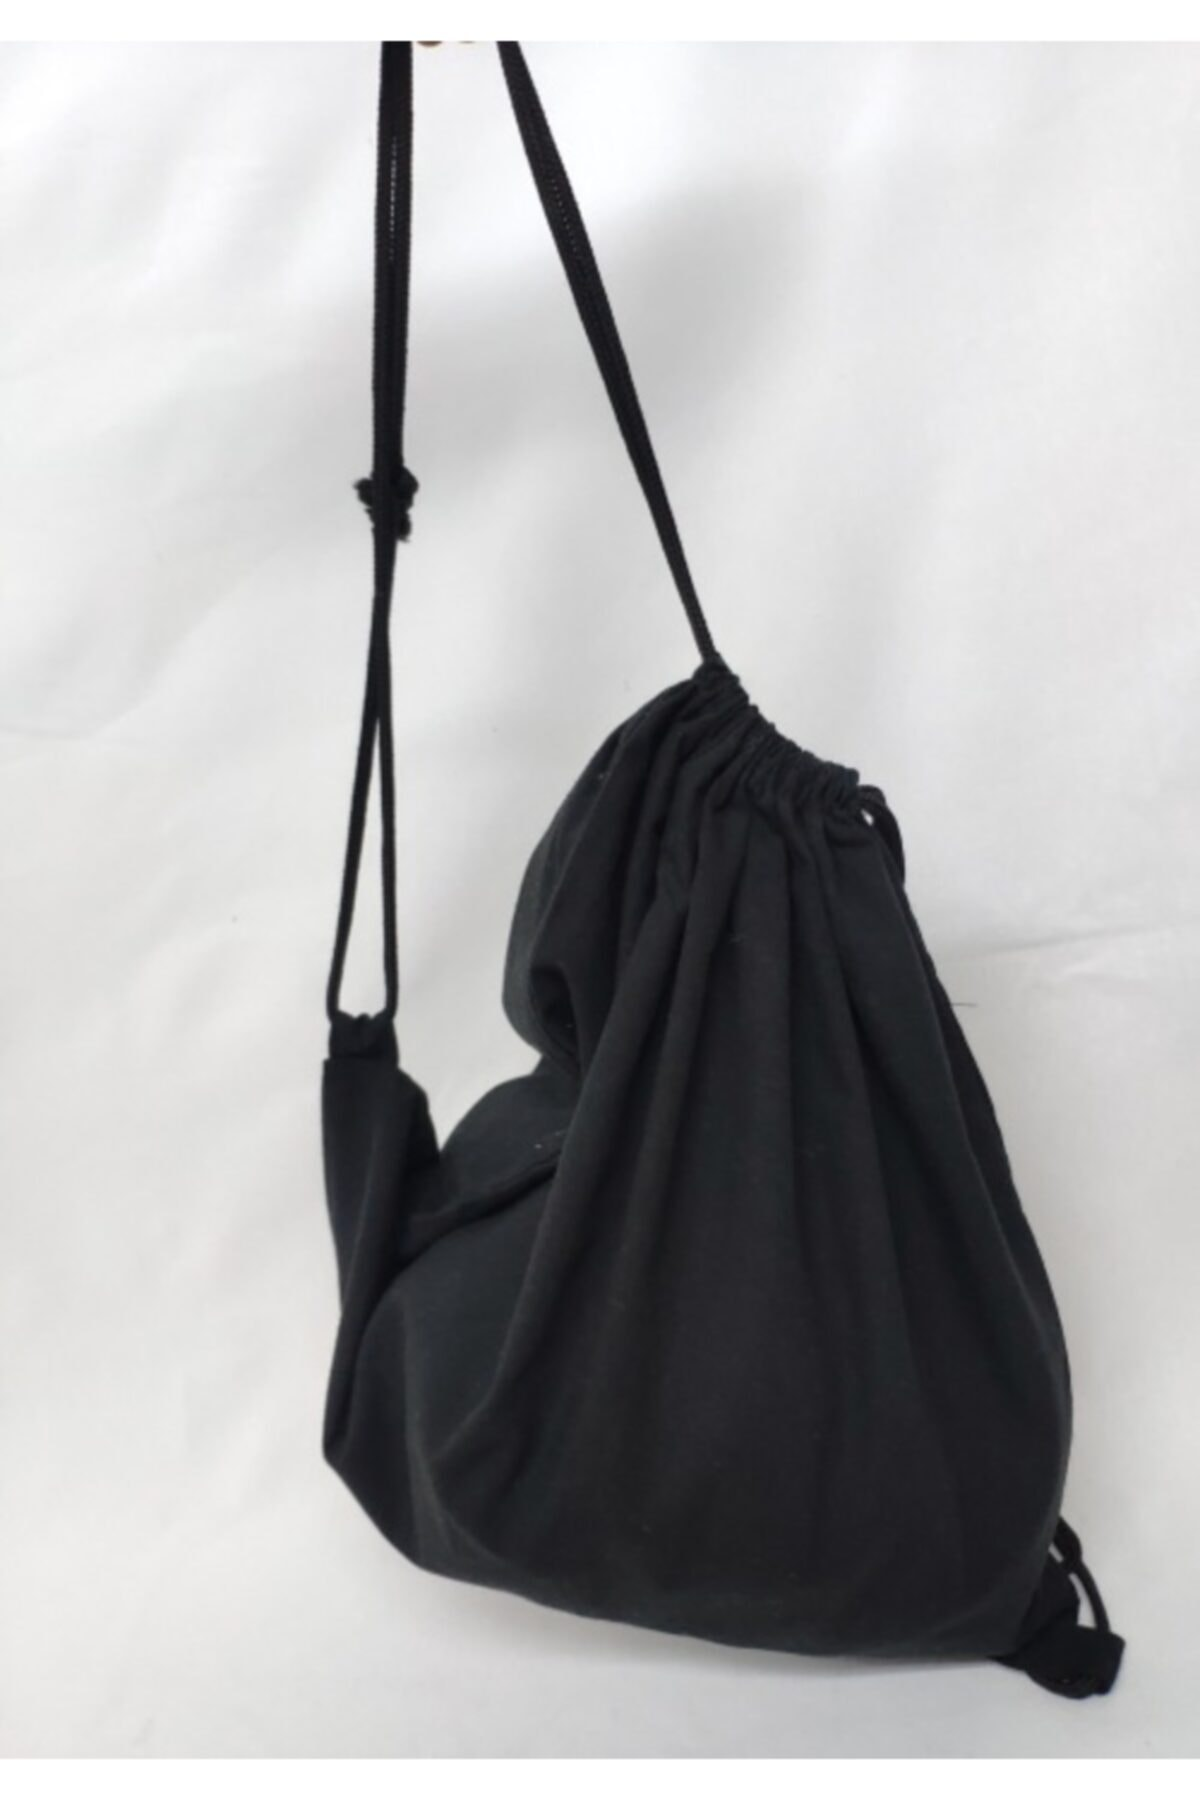 Cloth Bag Black Mouth Drawstring Backpack, Natural Cotton Material, Easy To Carry, Comfortable, Wide, hiking, Sports, travel